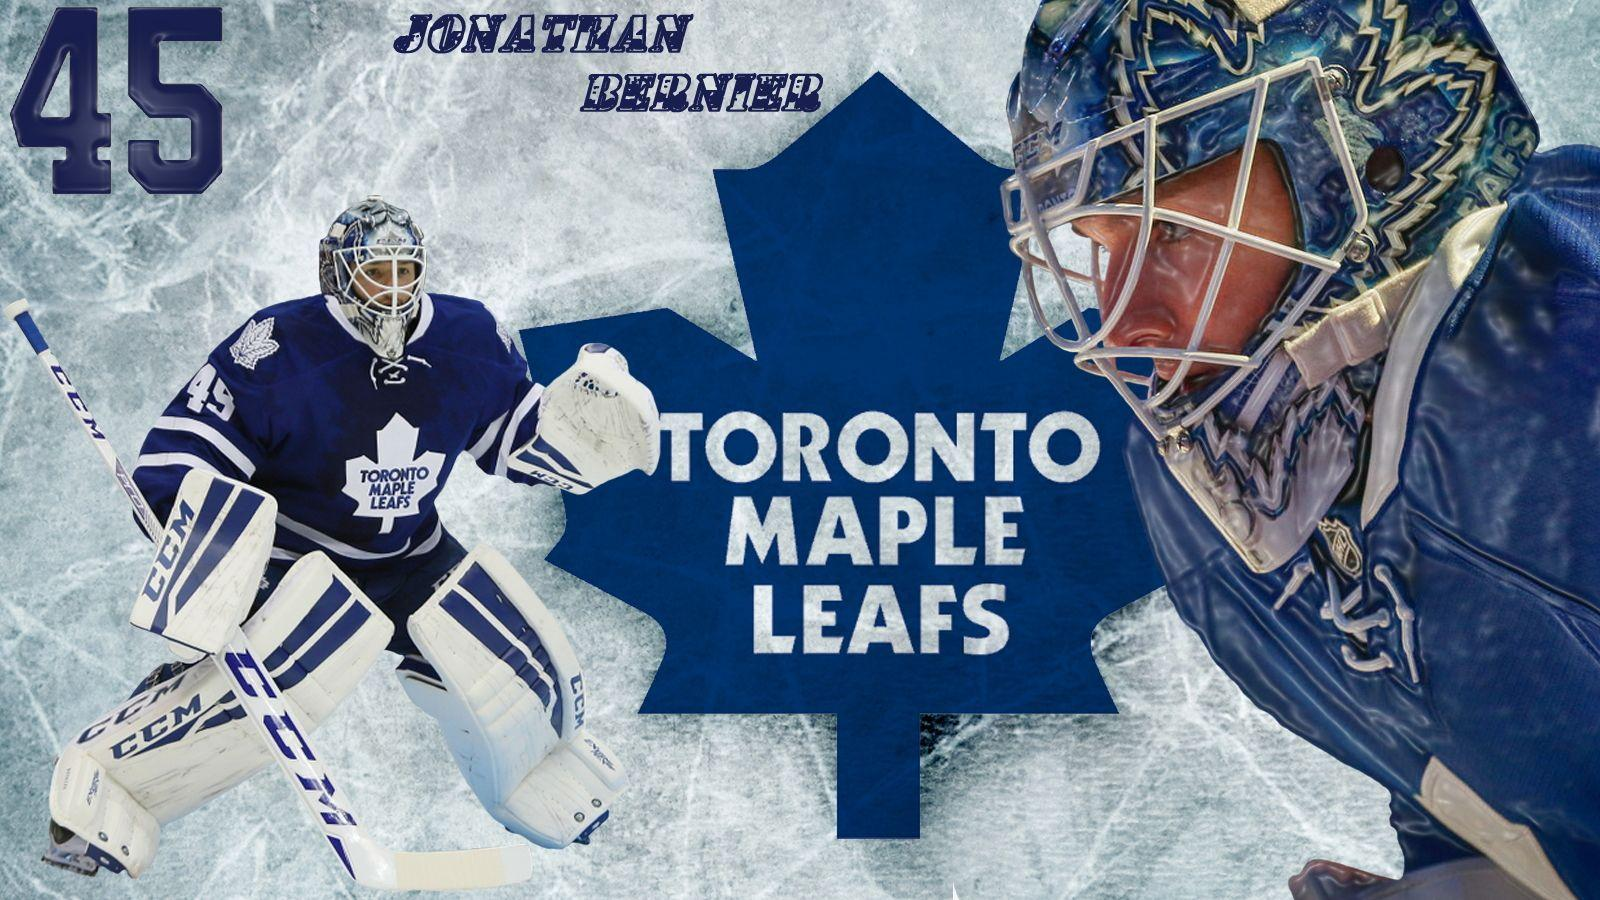 Toronto Maple Leafs Computer Wallpapers, Desktop Backgrounds